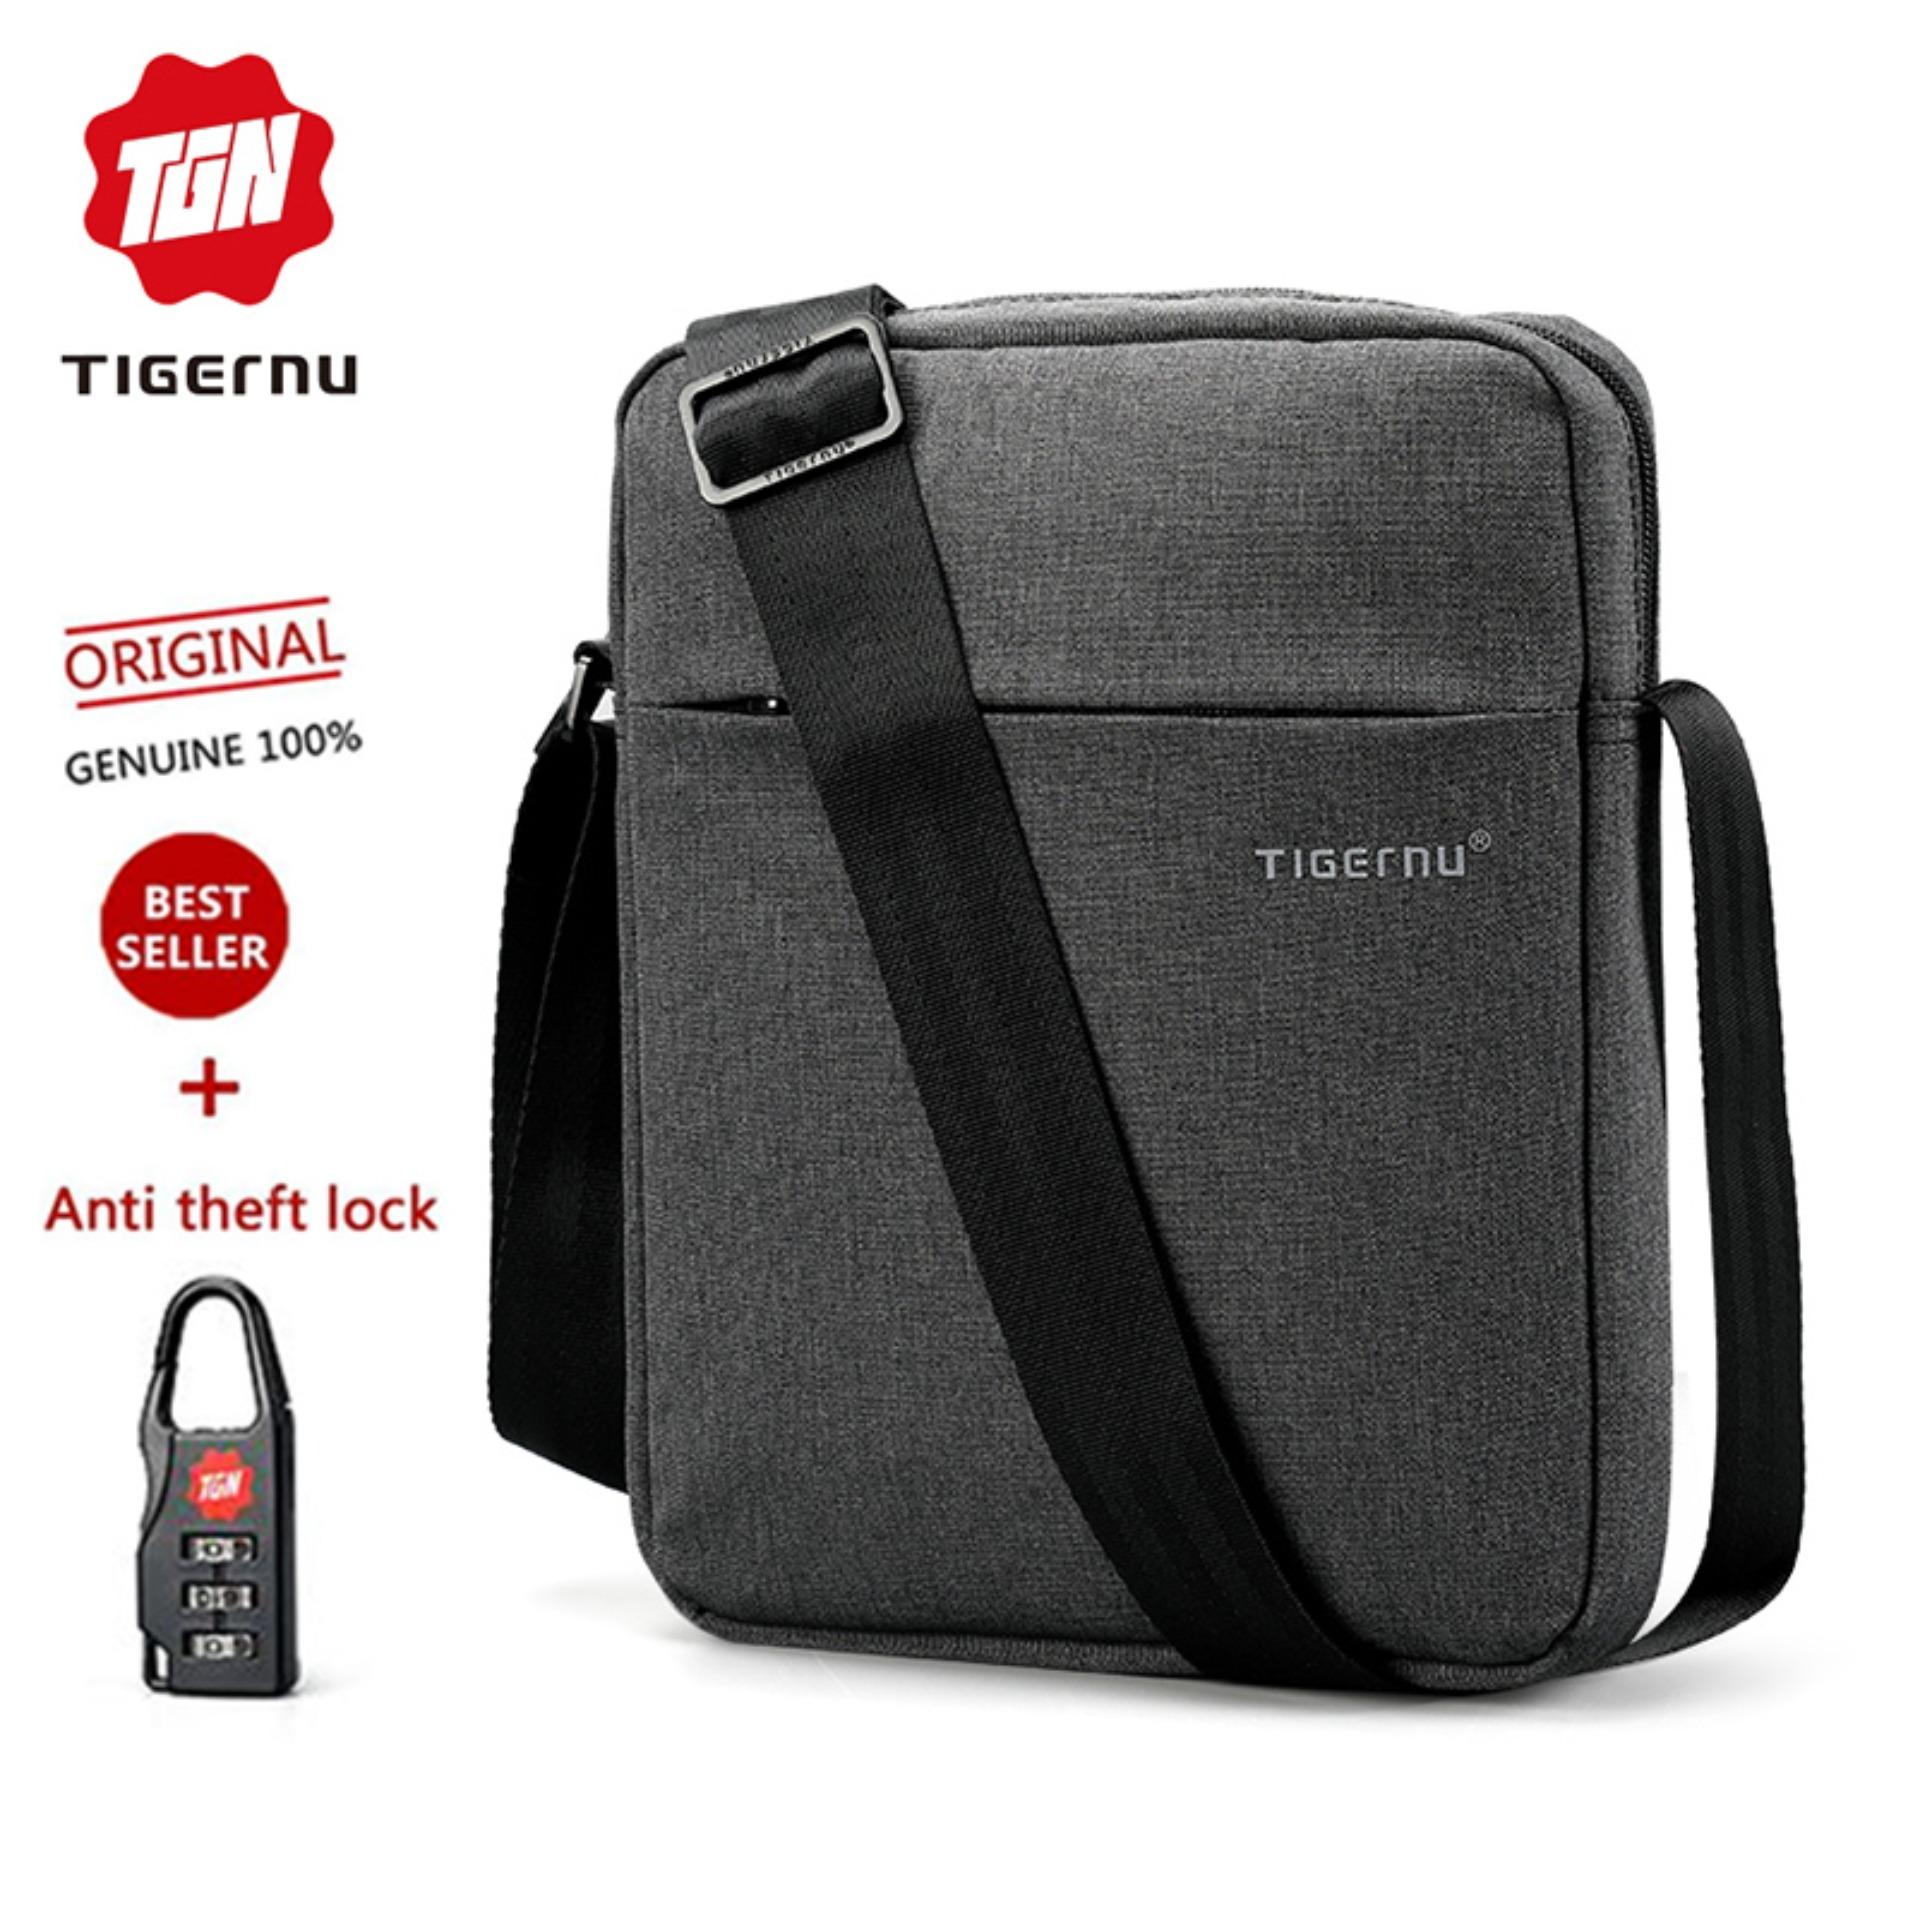 a68bab12178f Tigernu Hot selling Water-resistant Scratch proof Messenger Bag Sling bag  for Men Travelling bag